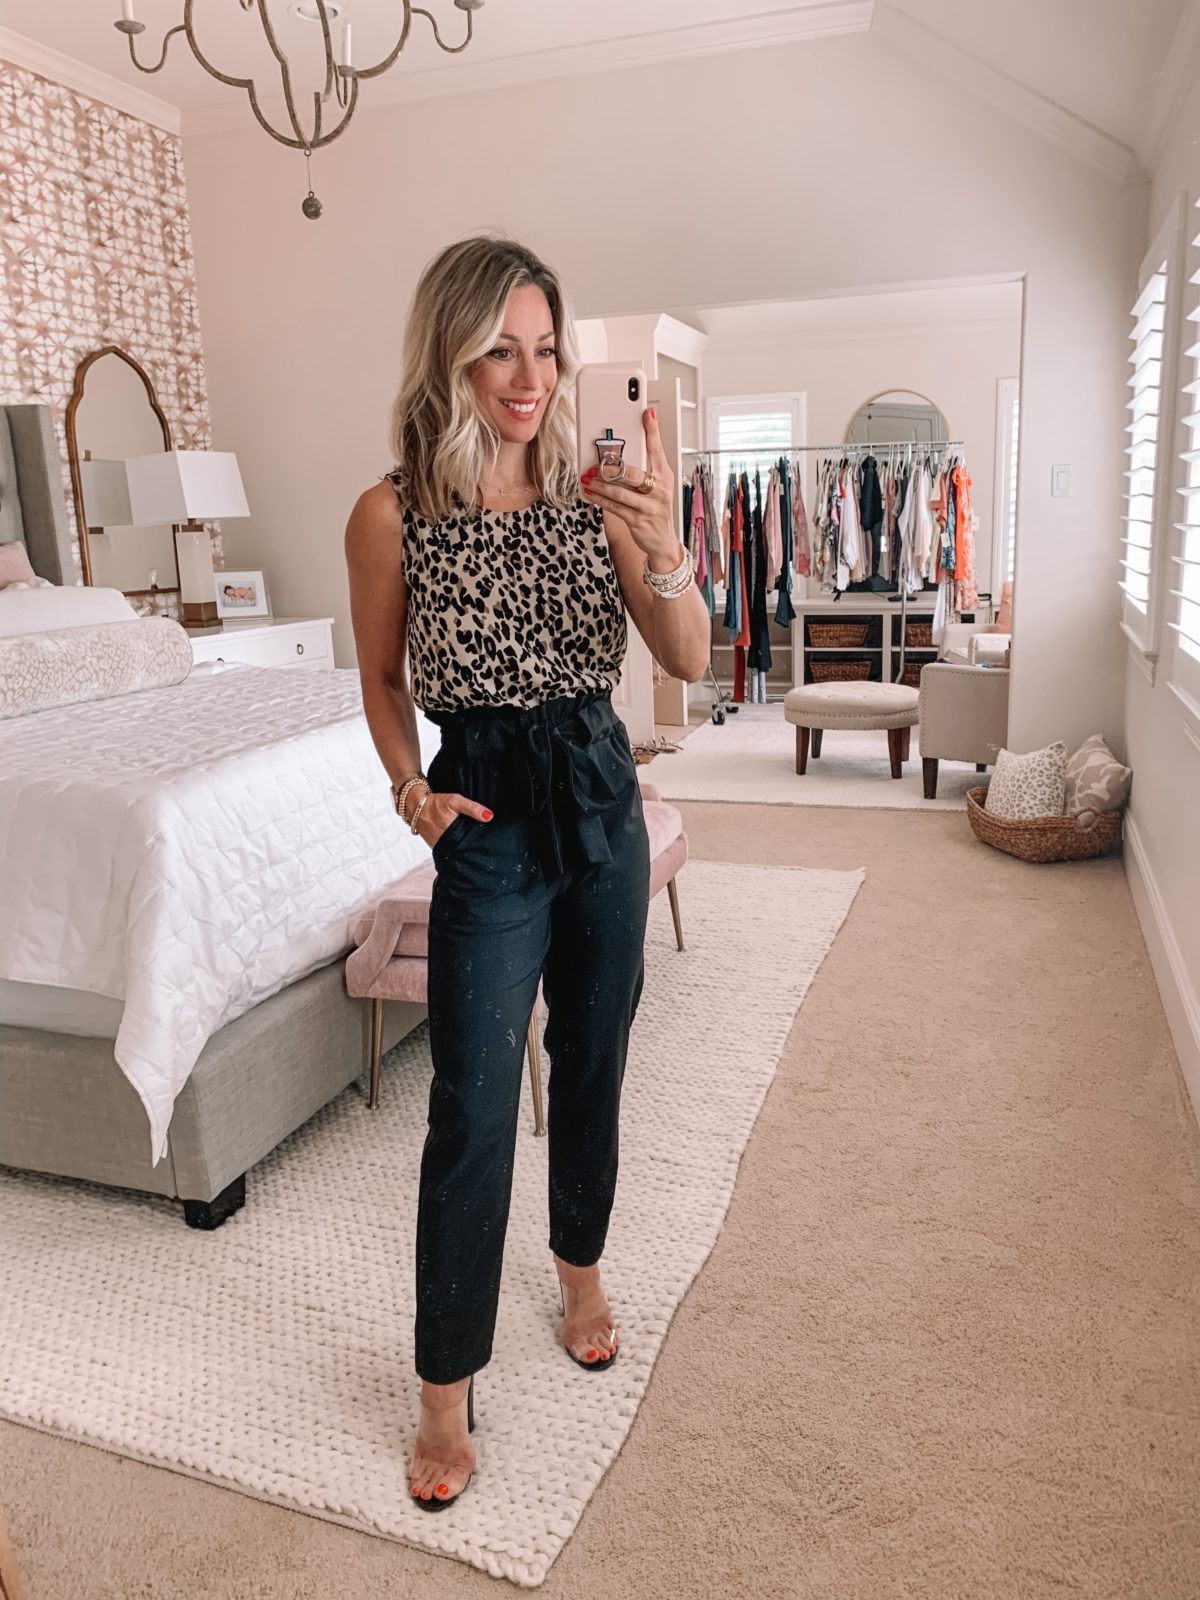 Dressing Room Finds Nordstrom and Target, Leopard Top, Paperbag Waist Pants, Clear Sandals